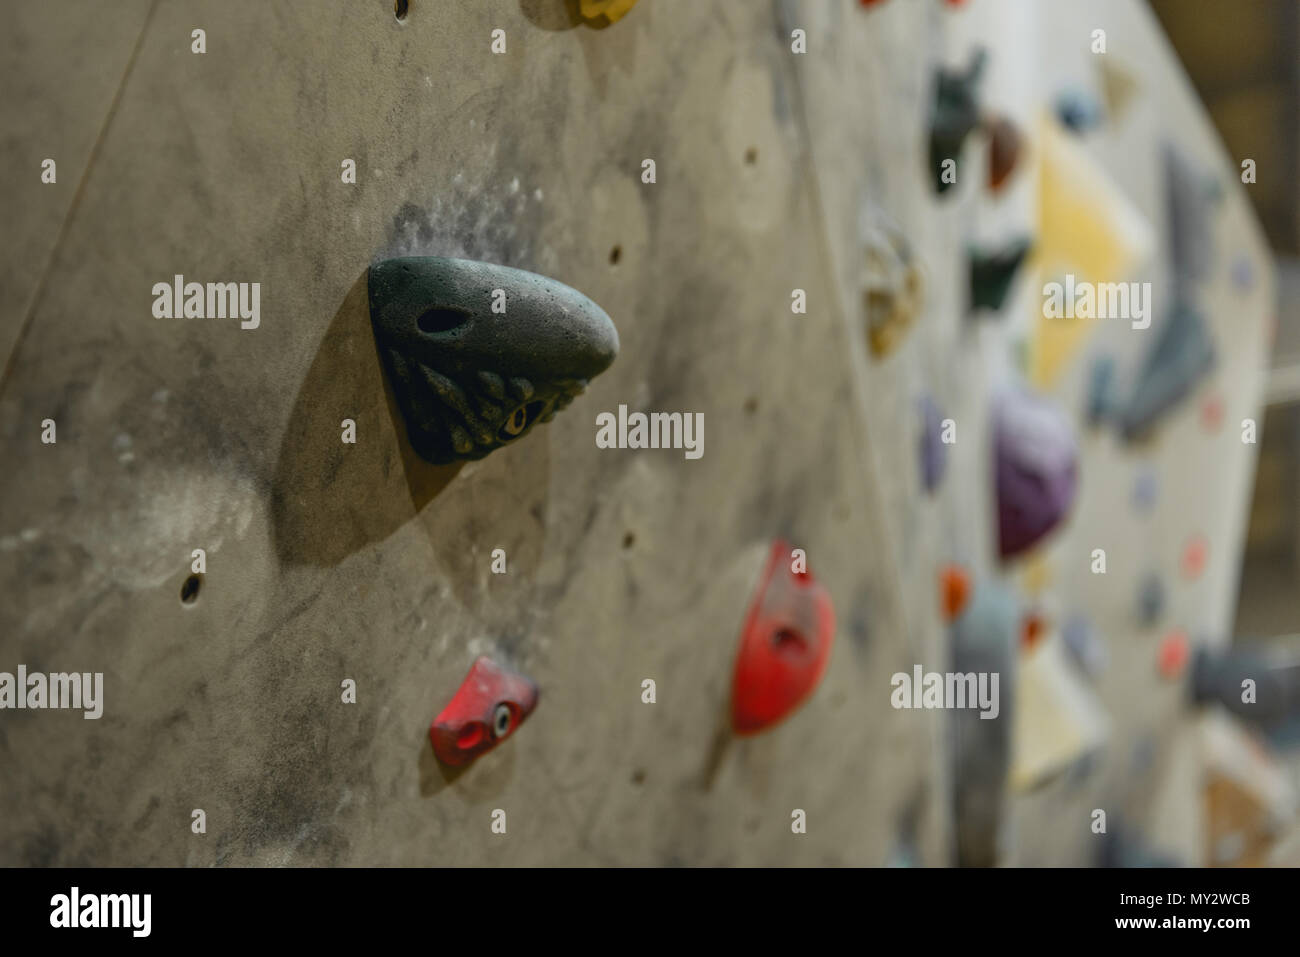 Closeup shot of grips for hands on a climbing wall at gym - Stock Image